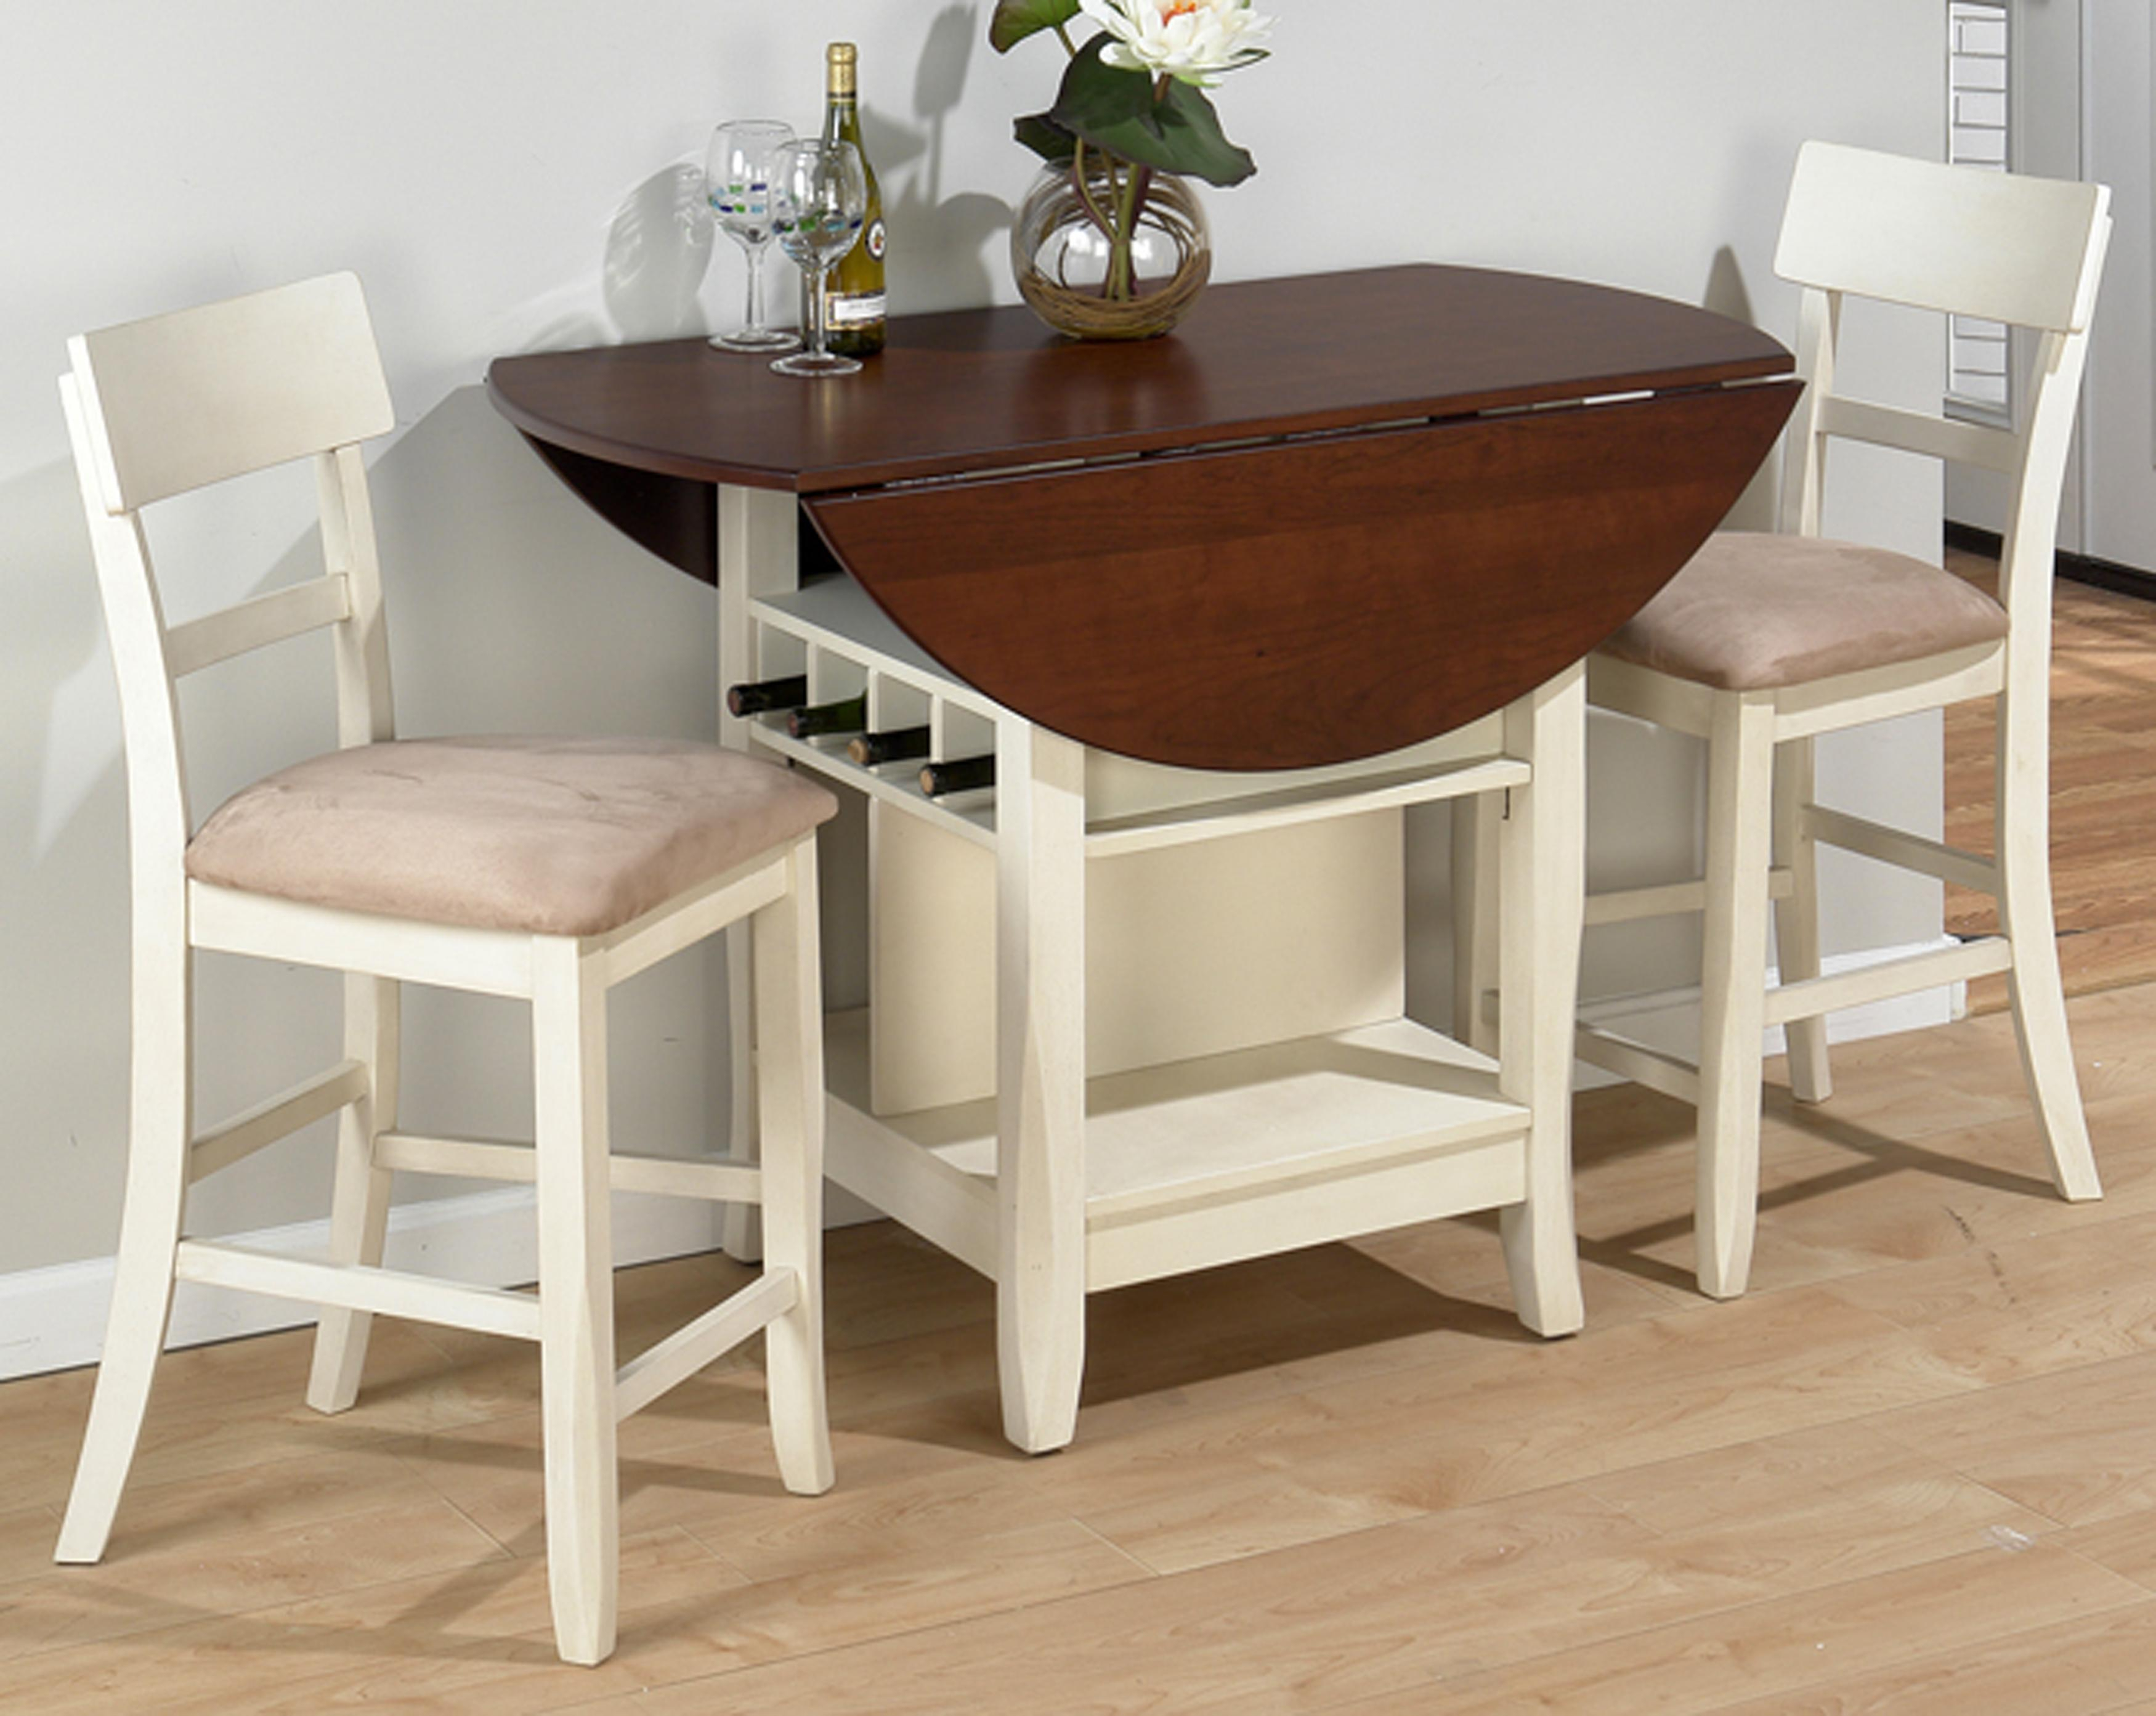 40 Most Superb Dining Table Set Square Room Furniture Sets Small With Regard To Most Recently Released 3 Piece Breakfast Dining Sets (View 19 of 20)